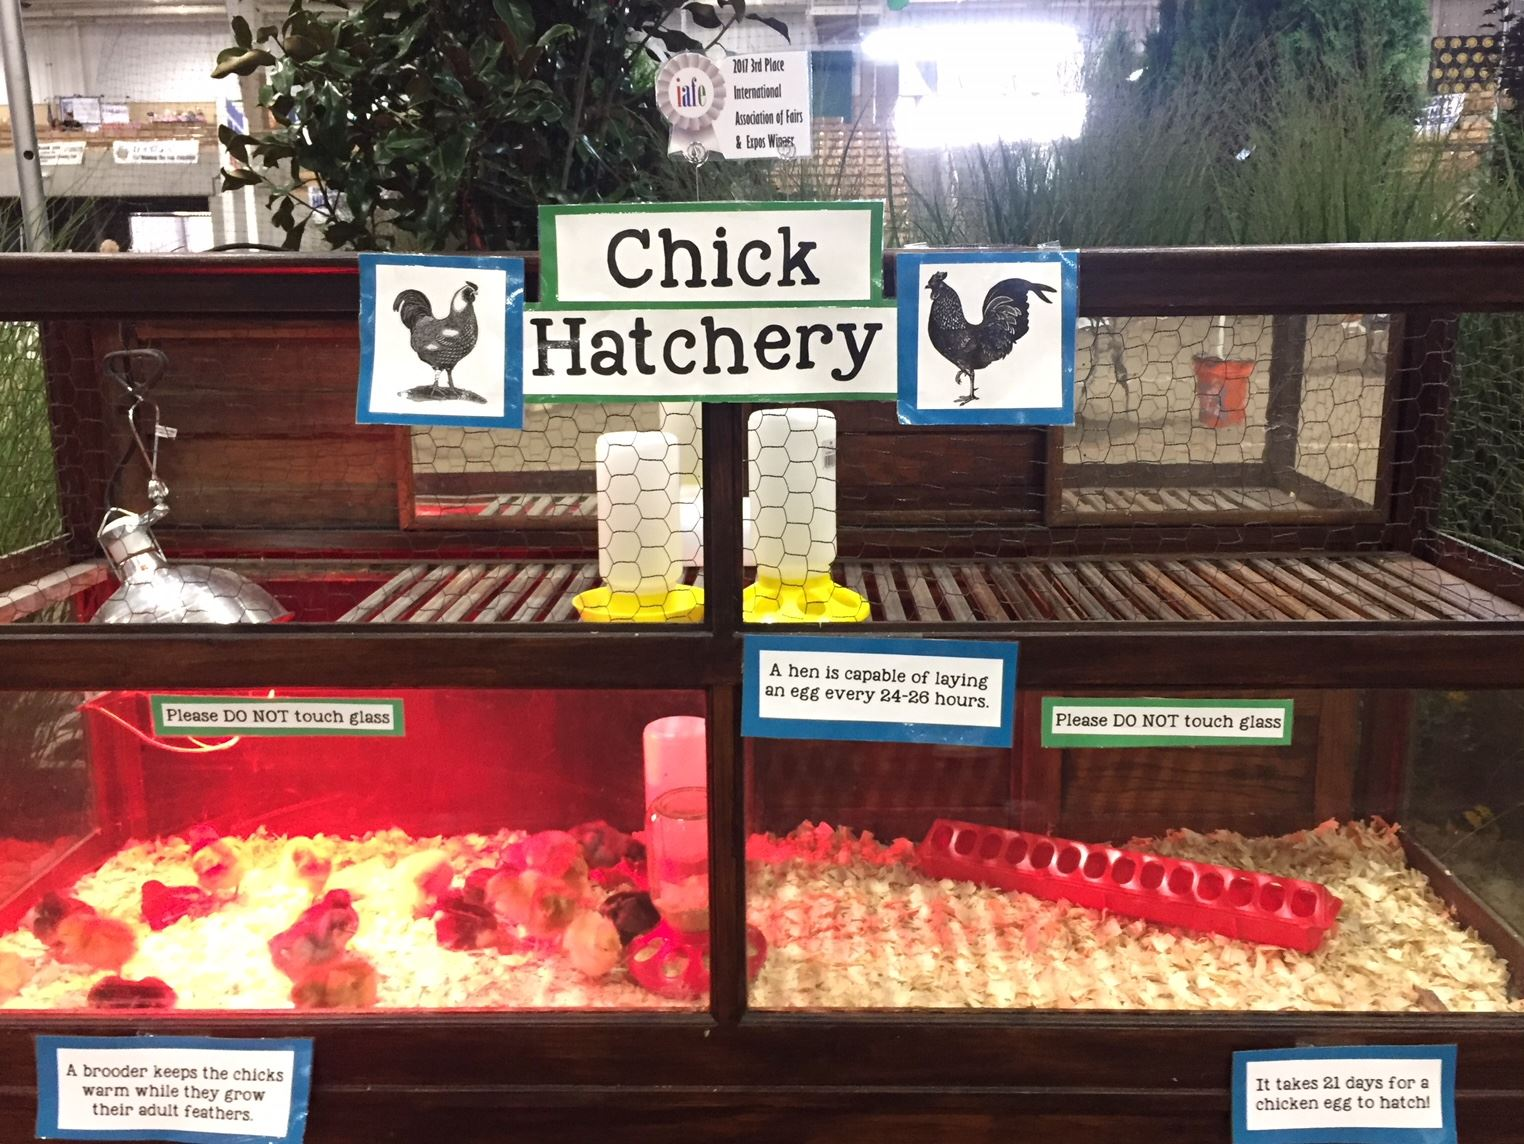 The chick hatchery display case with baby chicks inside